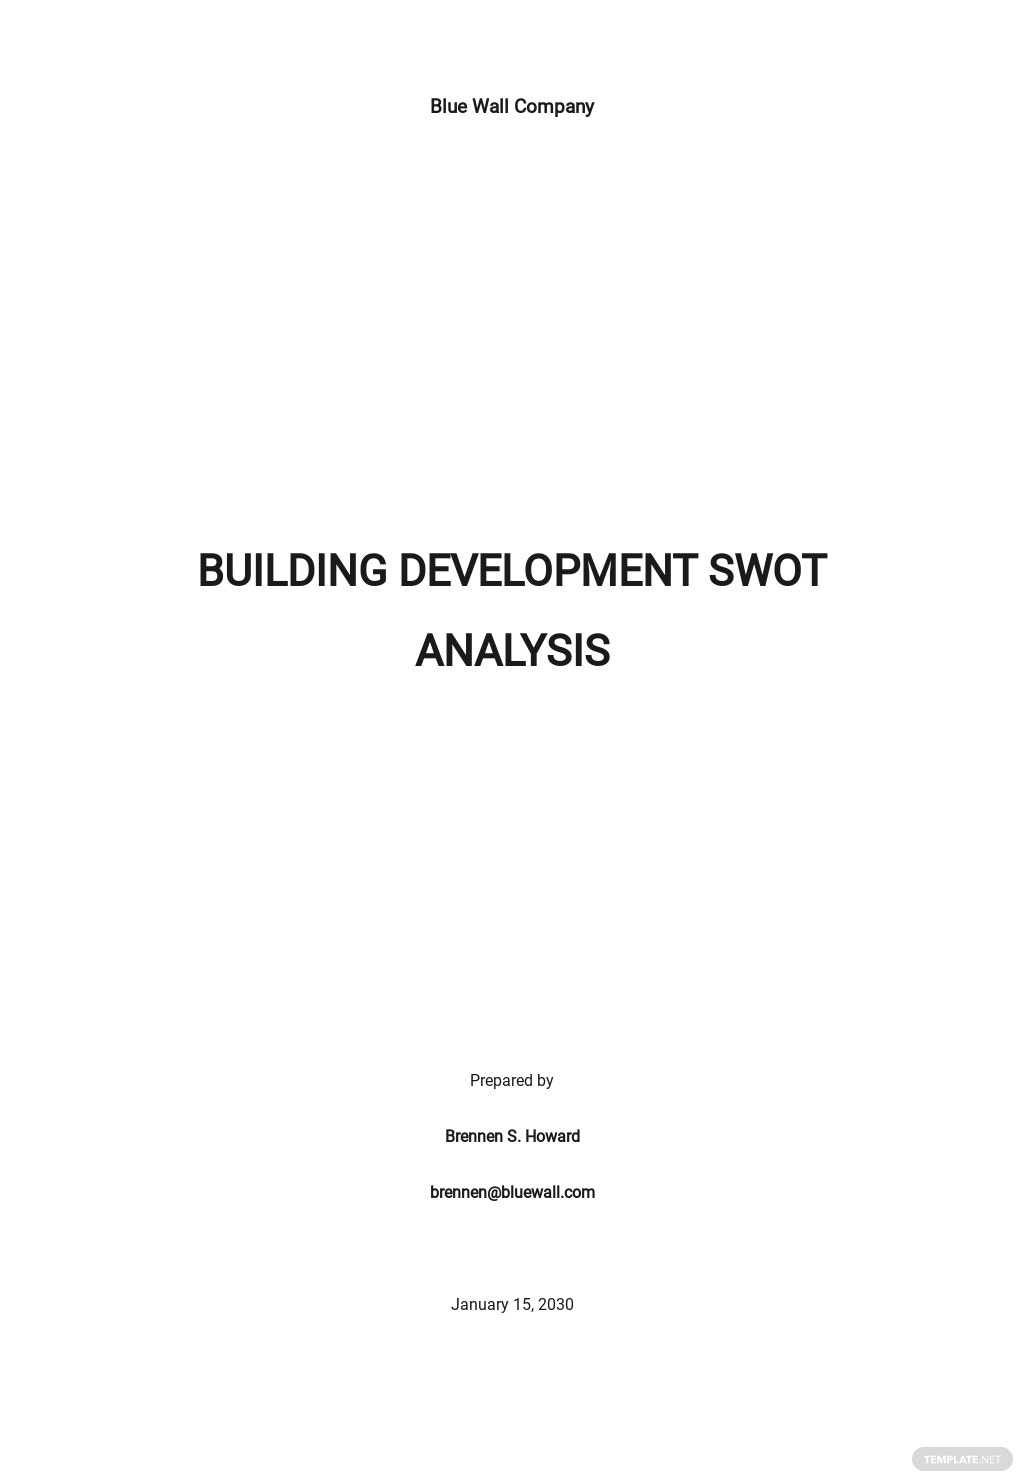 Building Development SWOT Analysis Template